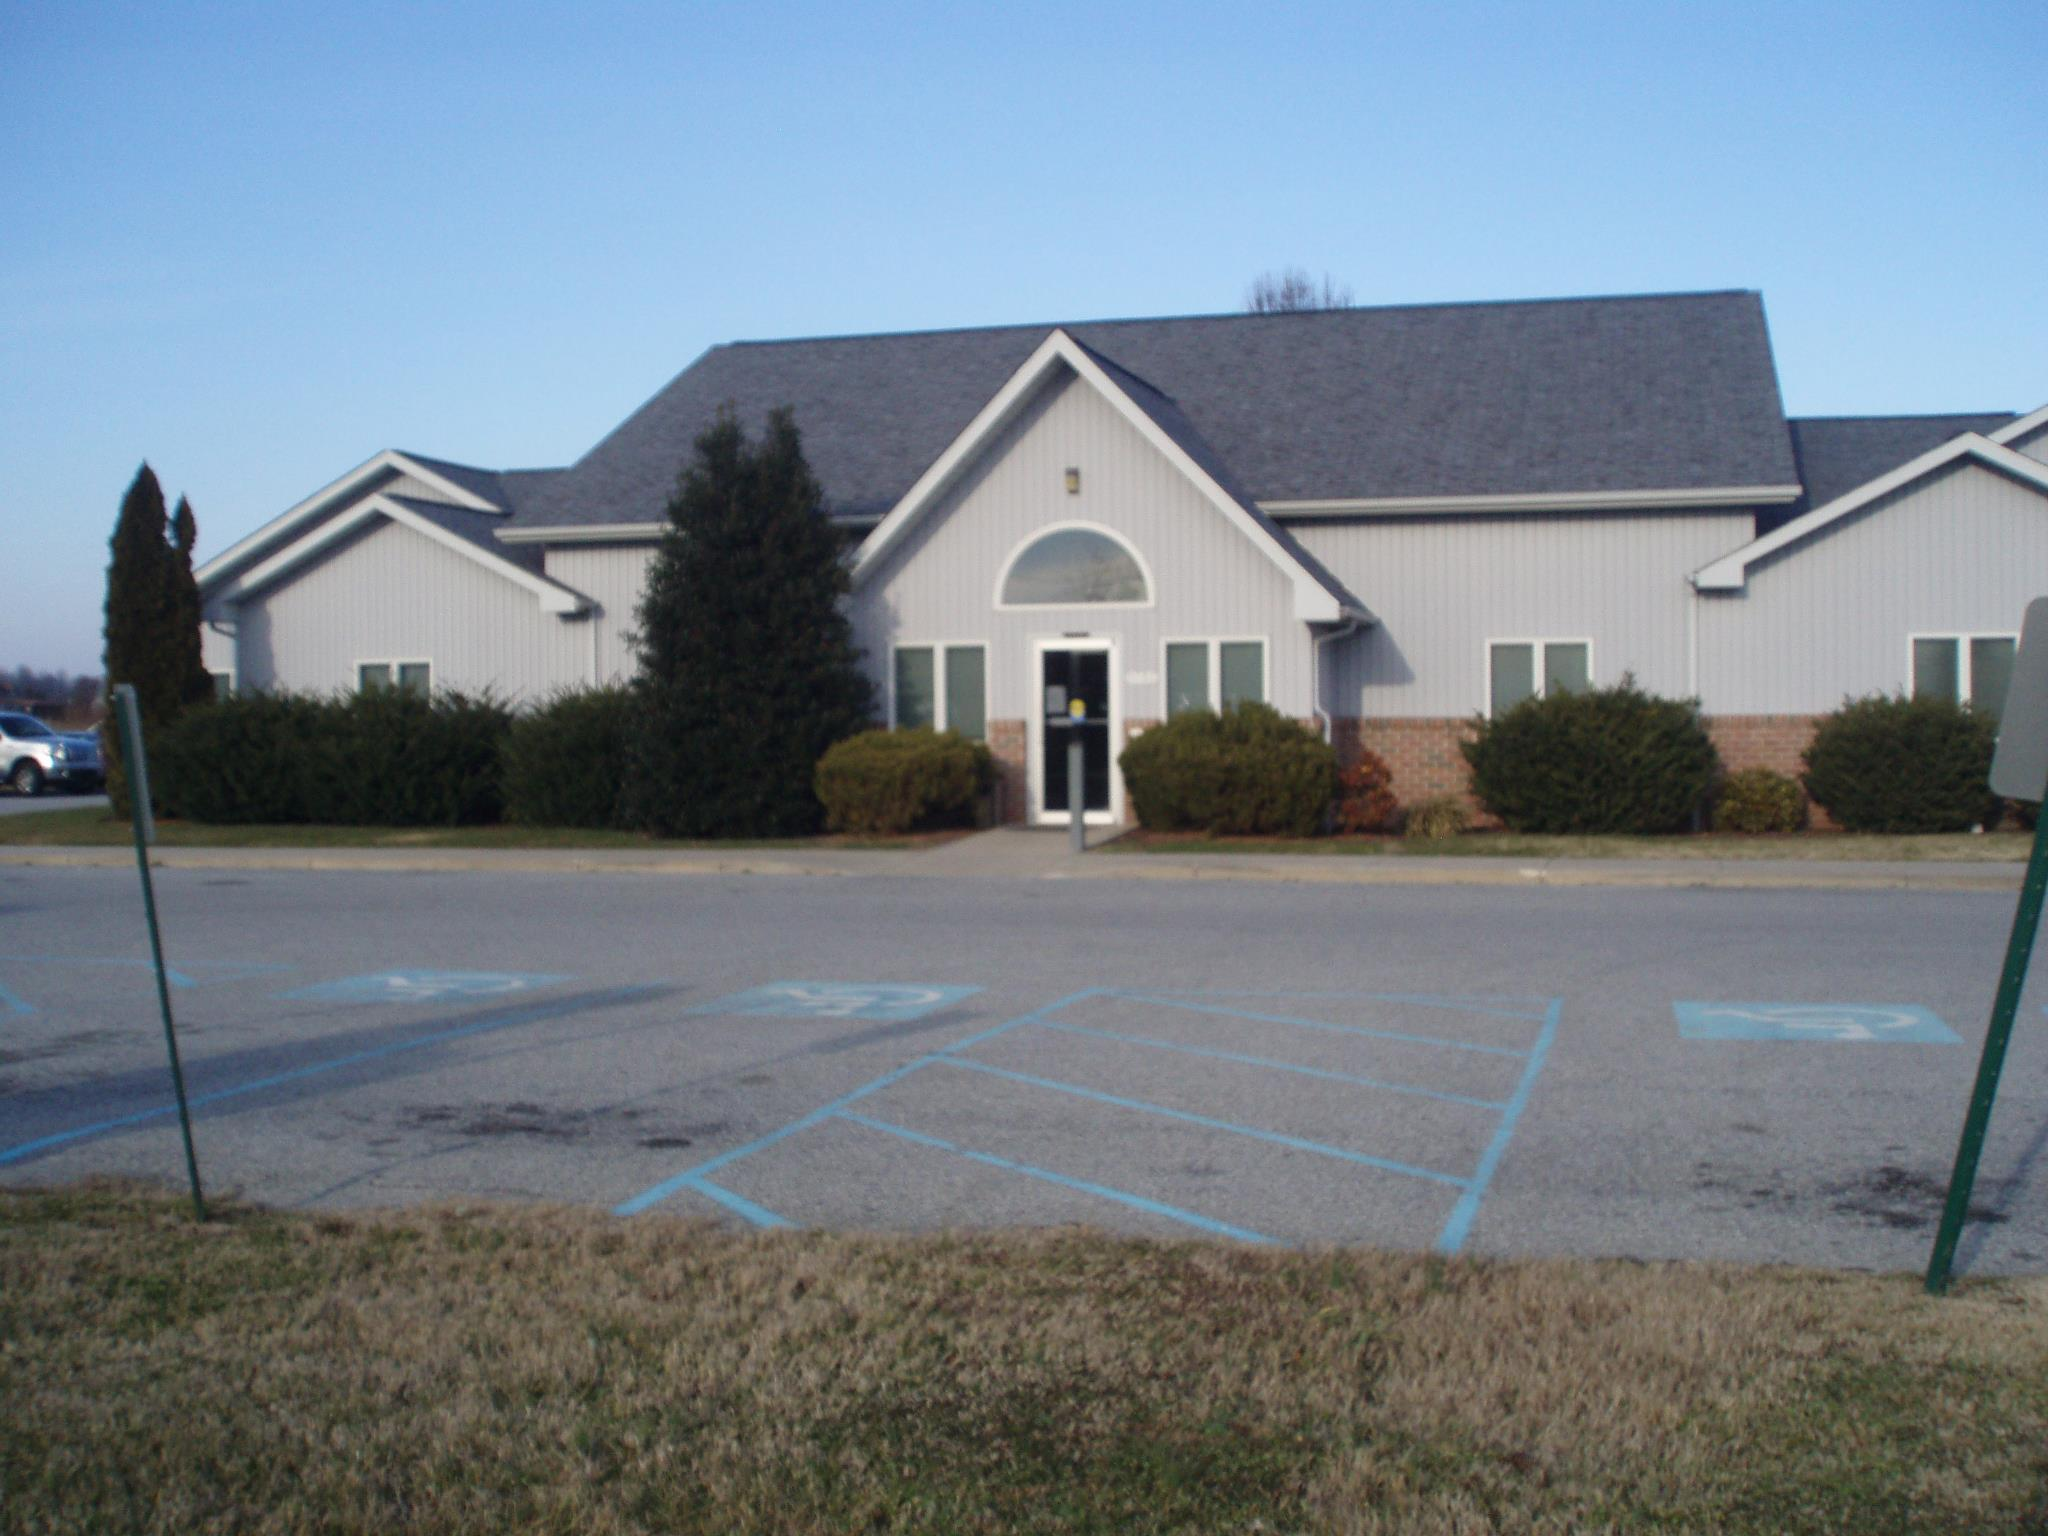 Whatcoats Veras Haven Transitional Housing